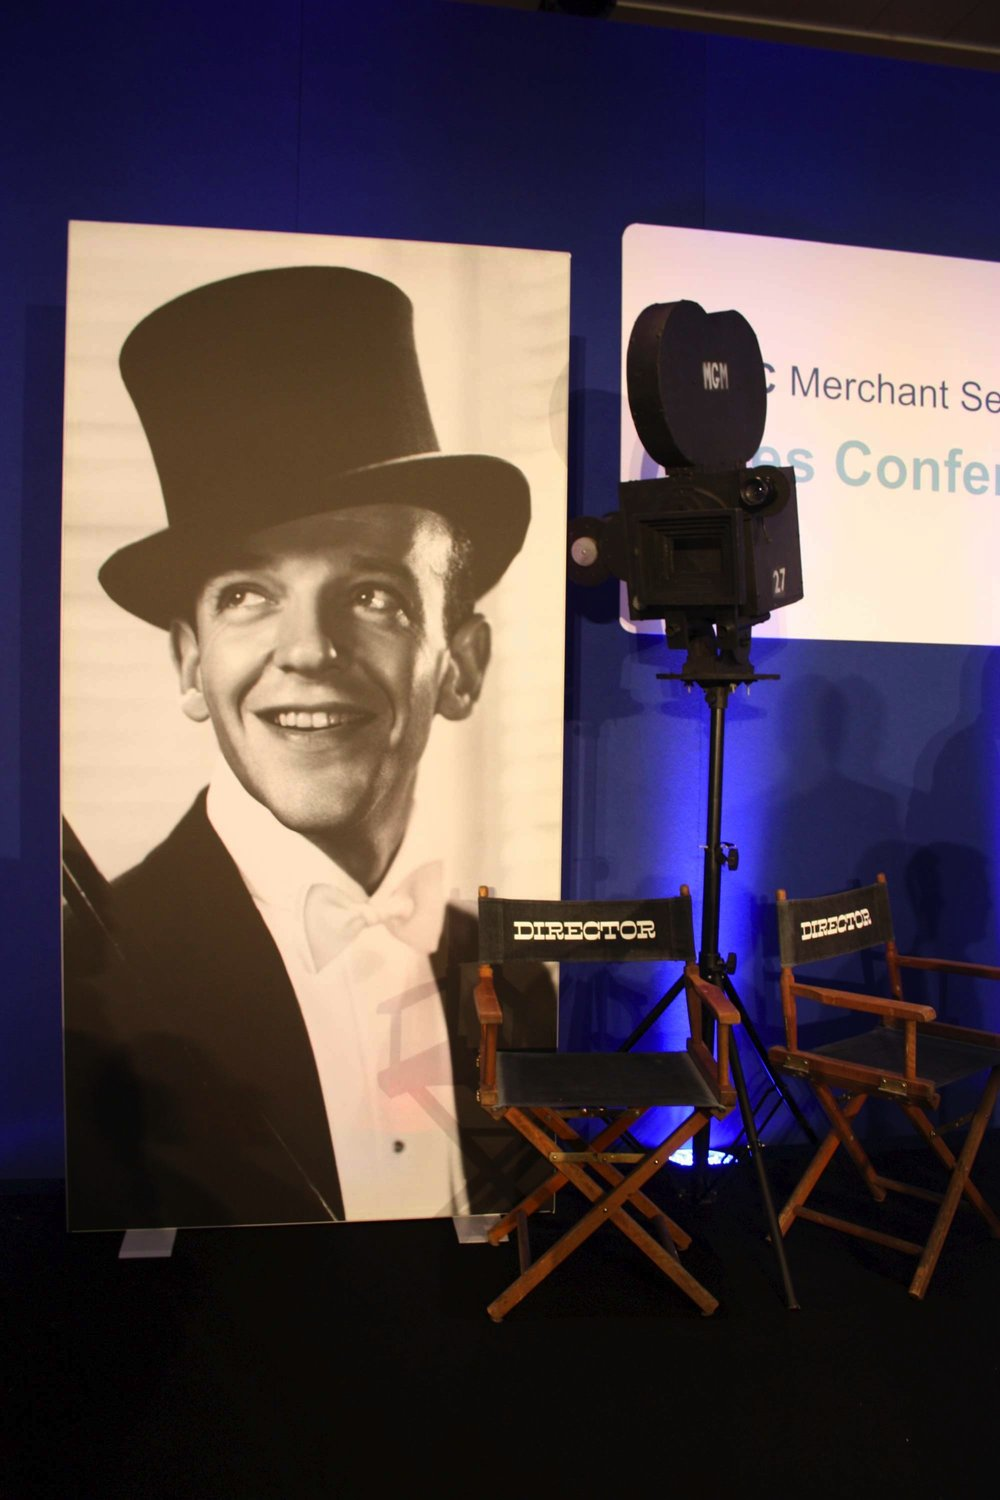 Fred Astaire Light Panel With Camera.jpg